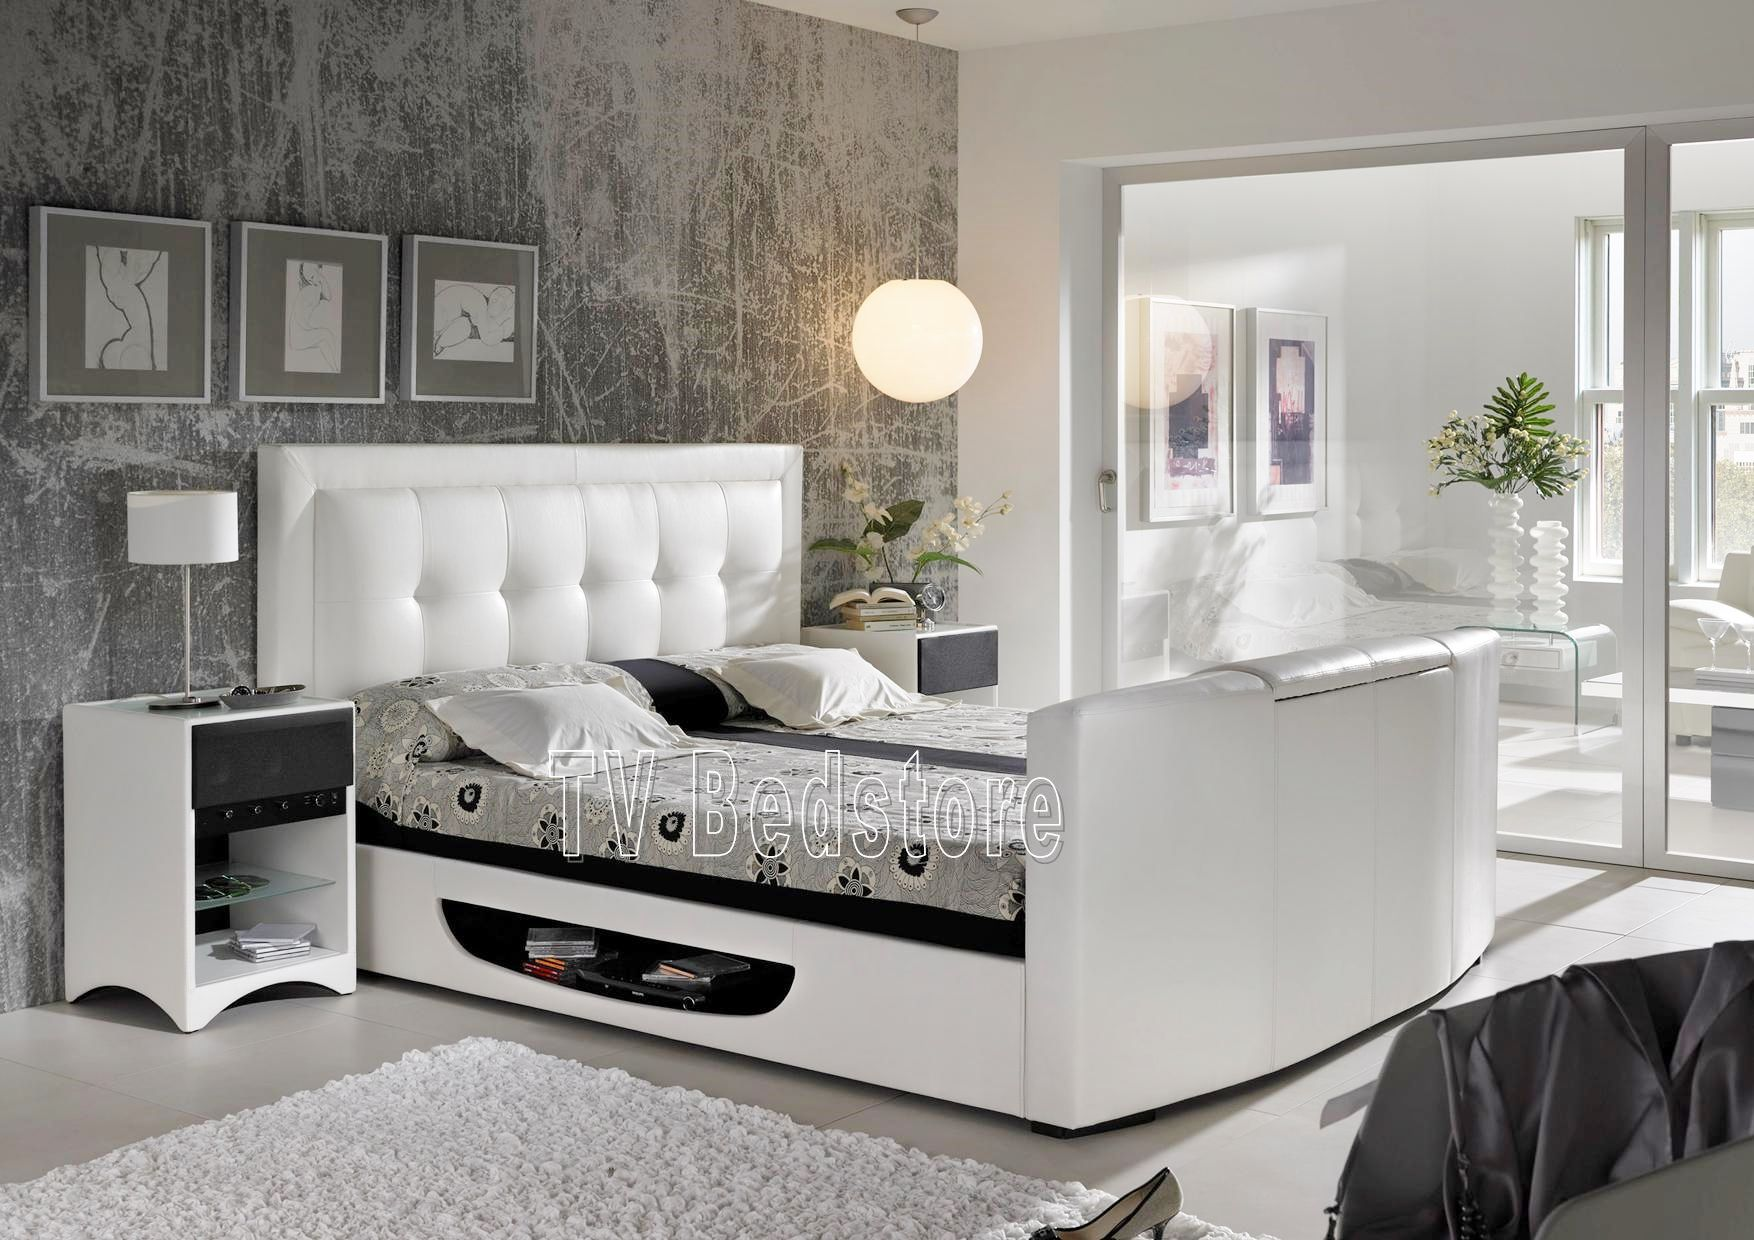 The Bowburn Super King Size TV Bed is the ultimate in bedroom style ...